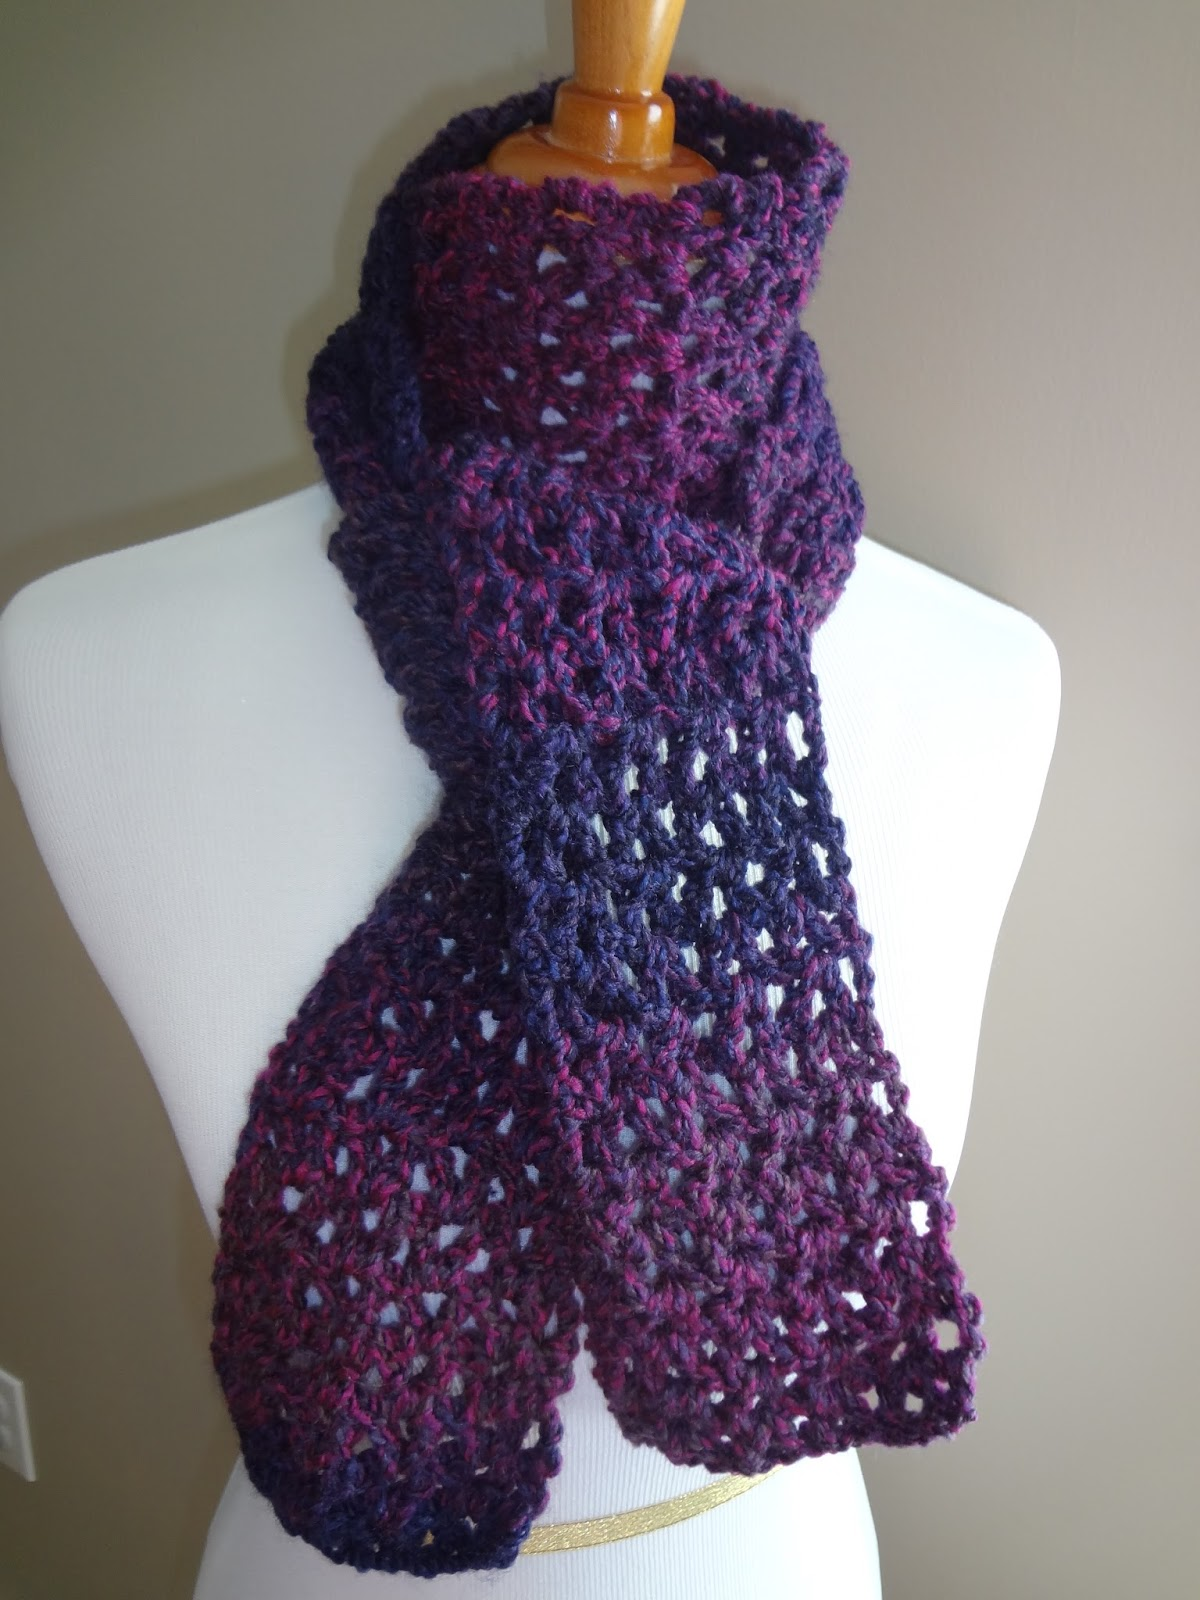 Crochet Stitches Good For Scarves : Fiber Flux: Free Crochet Pattern...Blueberry Pie Scarf!